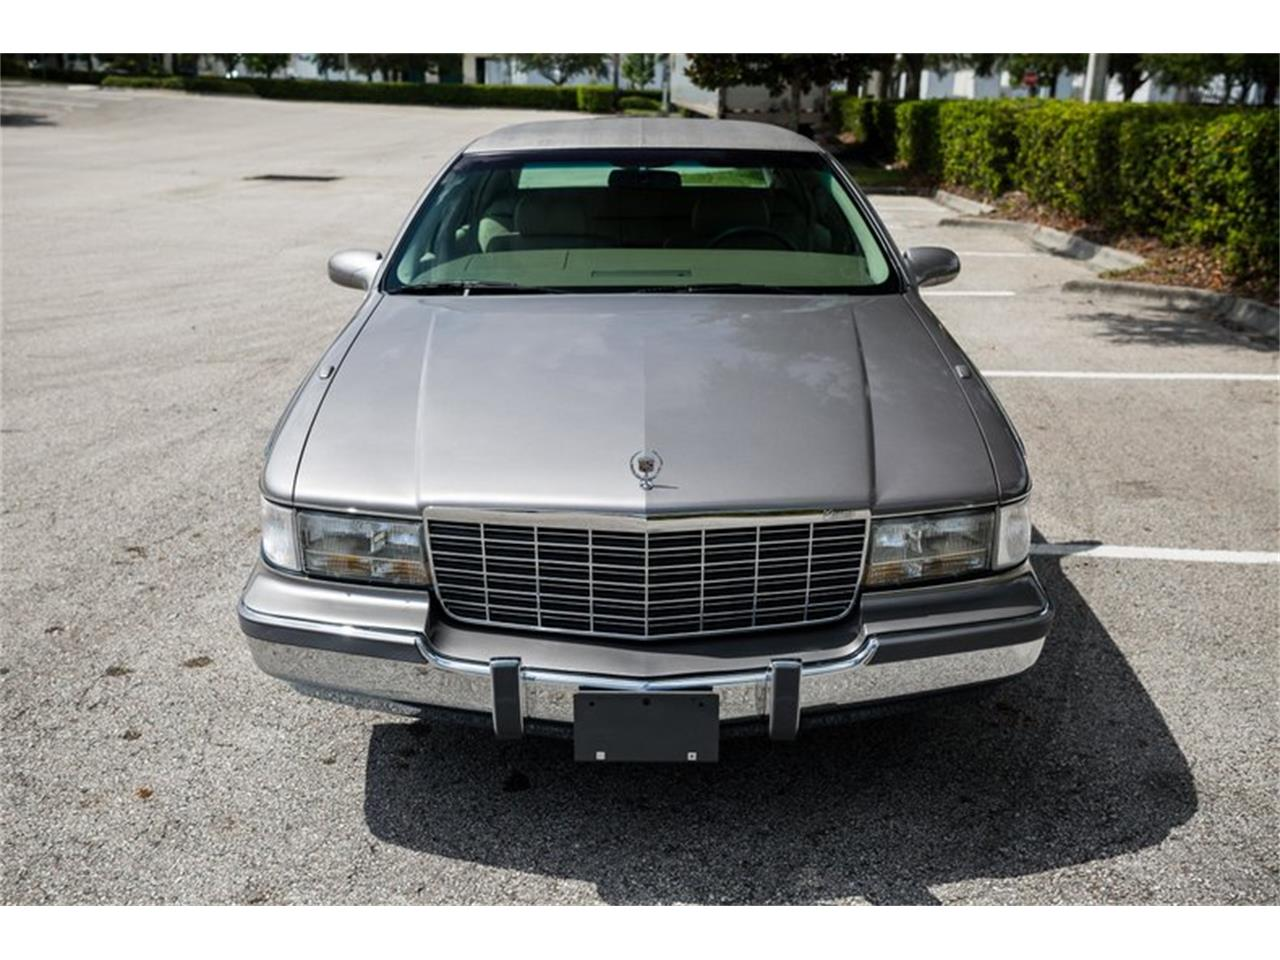 Large Picture of '96 Cadillac Fleetwood located in Orlando Florida - $32,900.00 Offered by Orlando Classic Cars - Q8PS